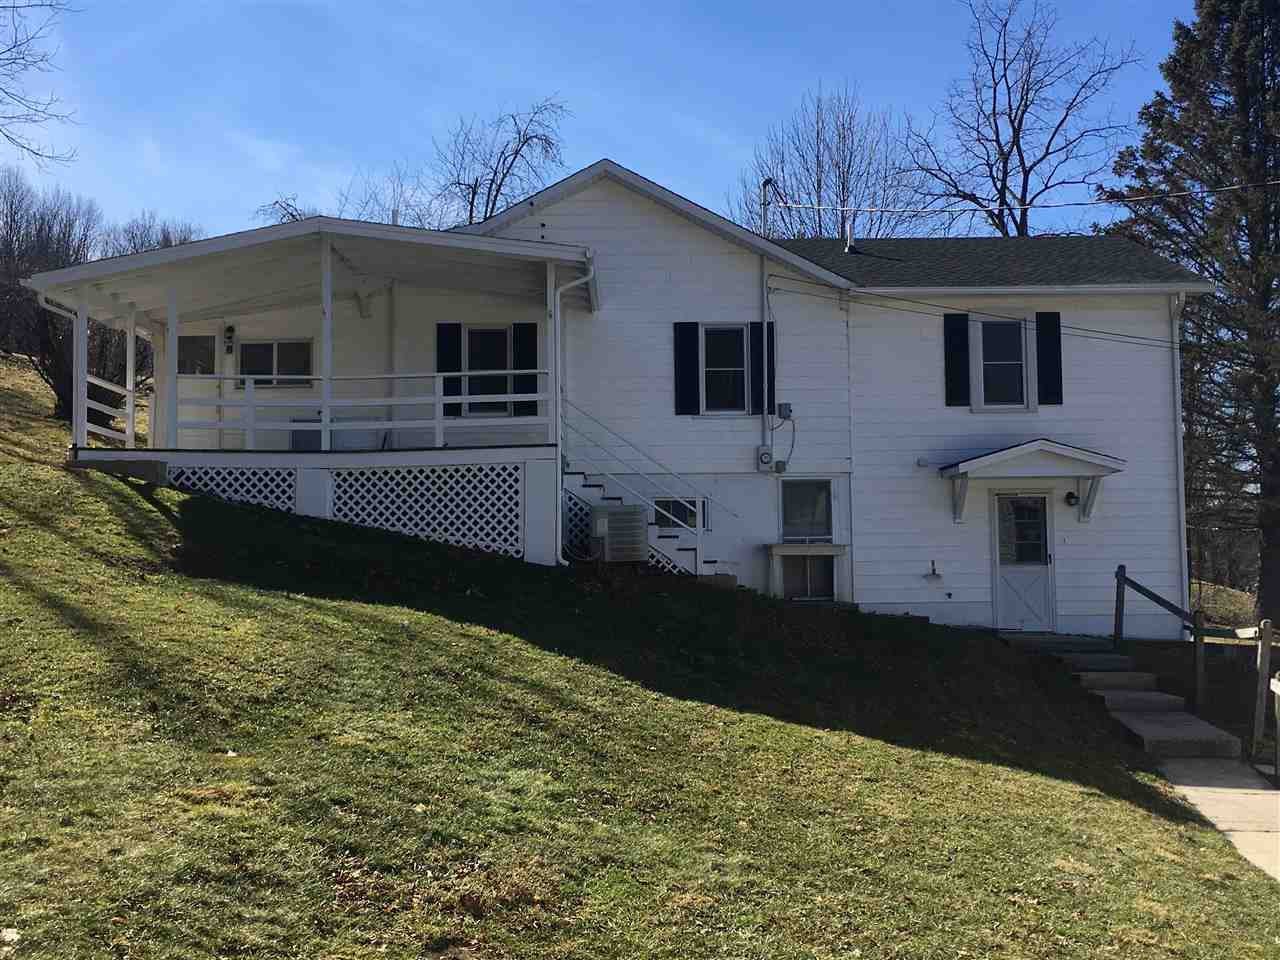 376 Paul Siple Dr, Hot Springs, VA, 24445